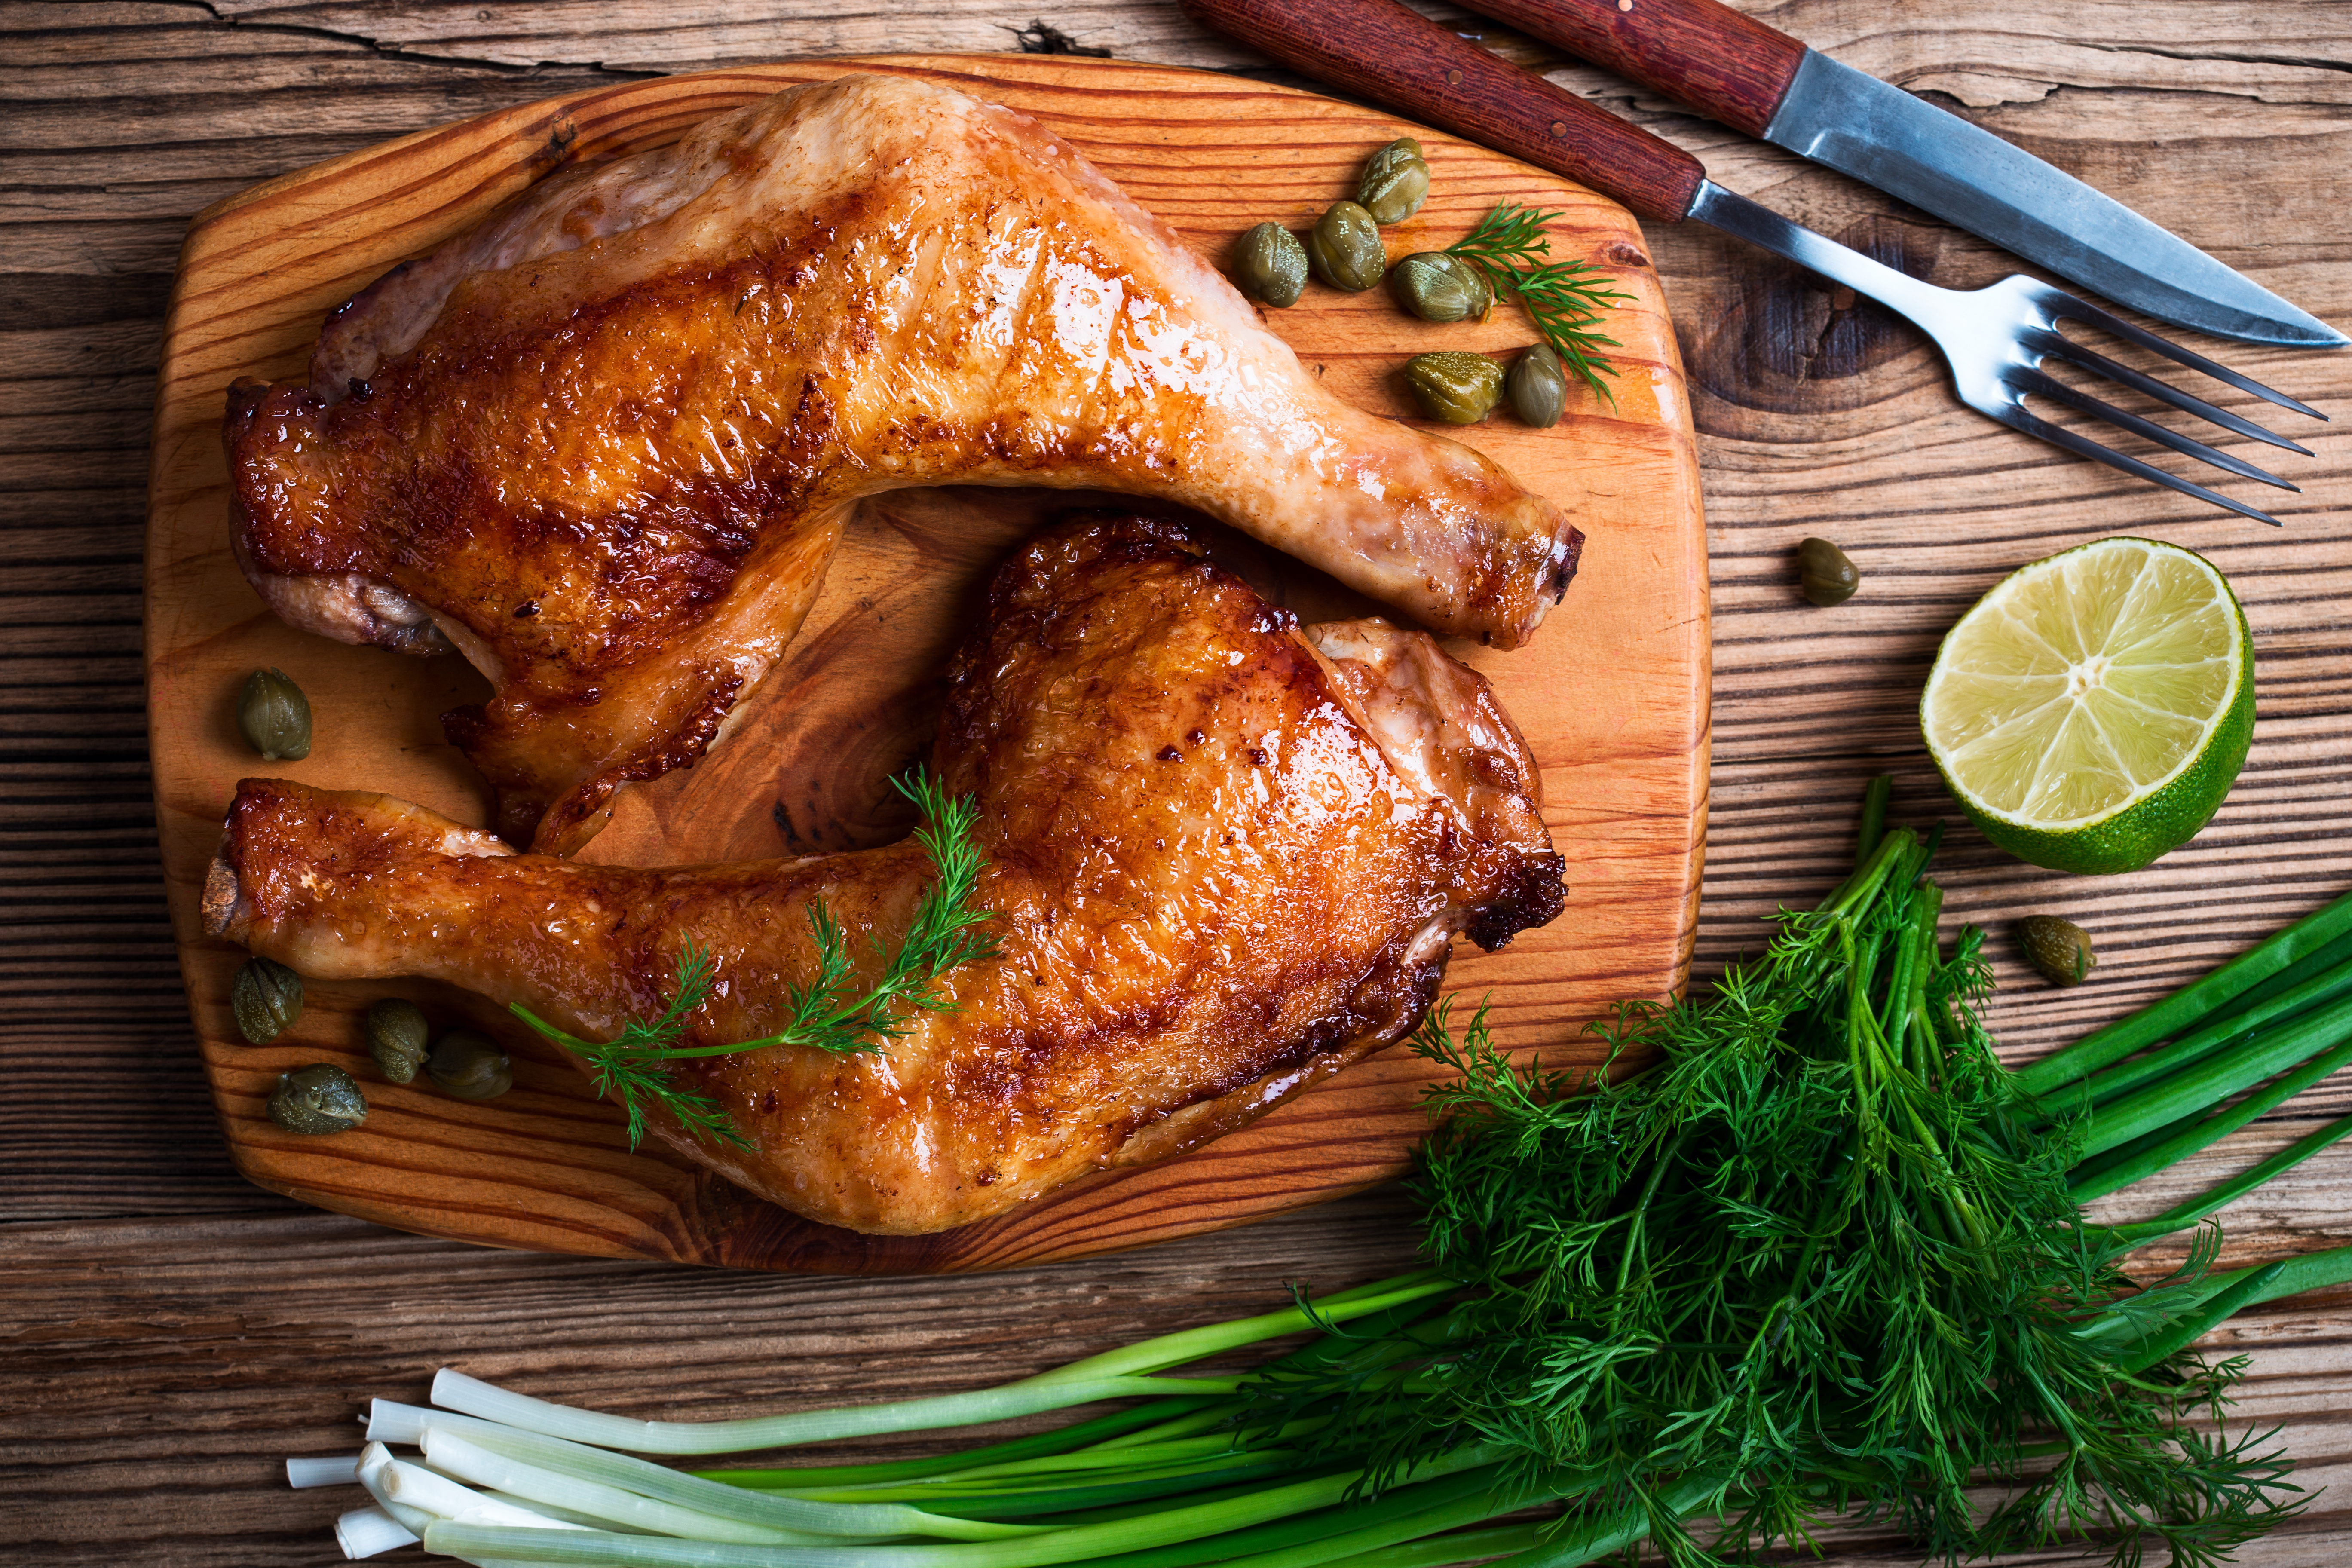 What foods cause nightmares? Chicken